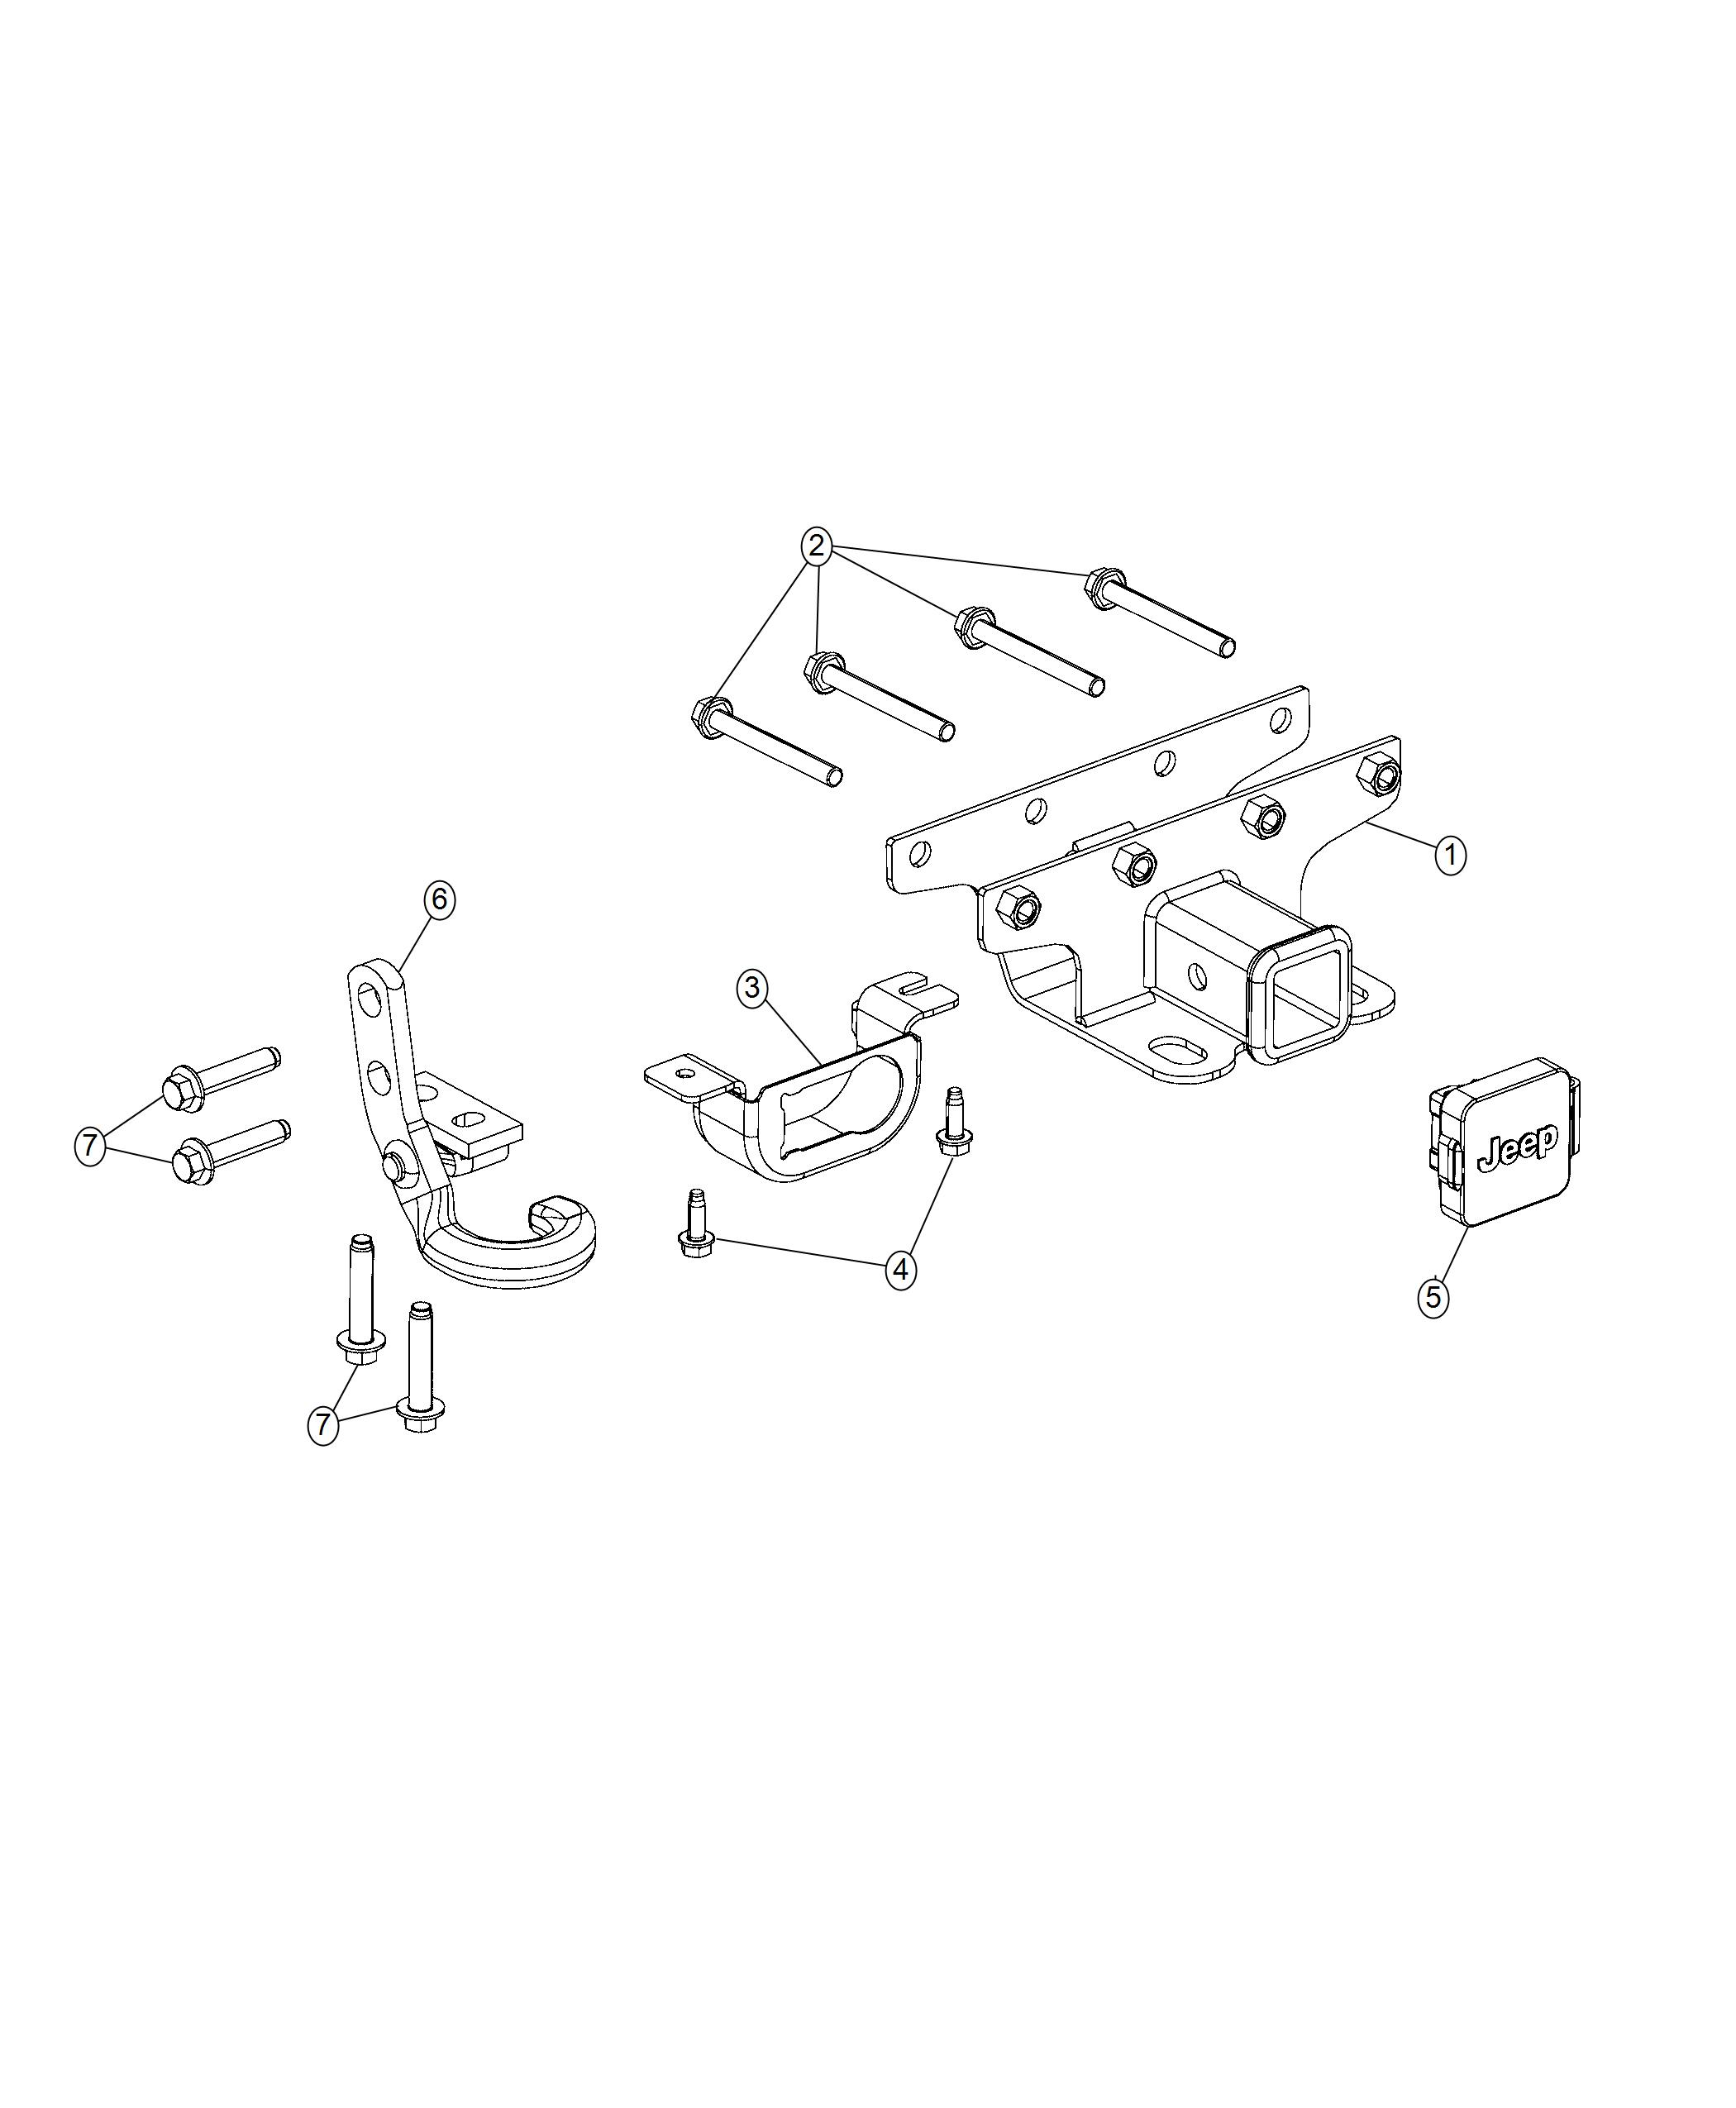 2018 Jeep Wrangler Receiver kit. Trailer tow. [injection